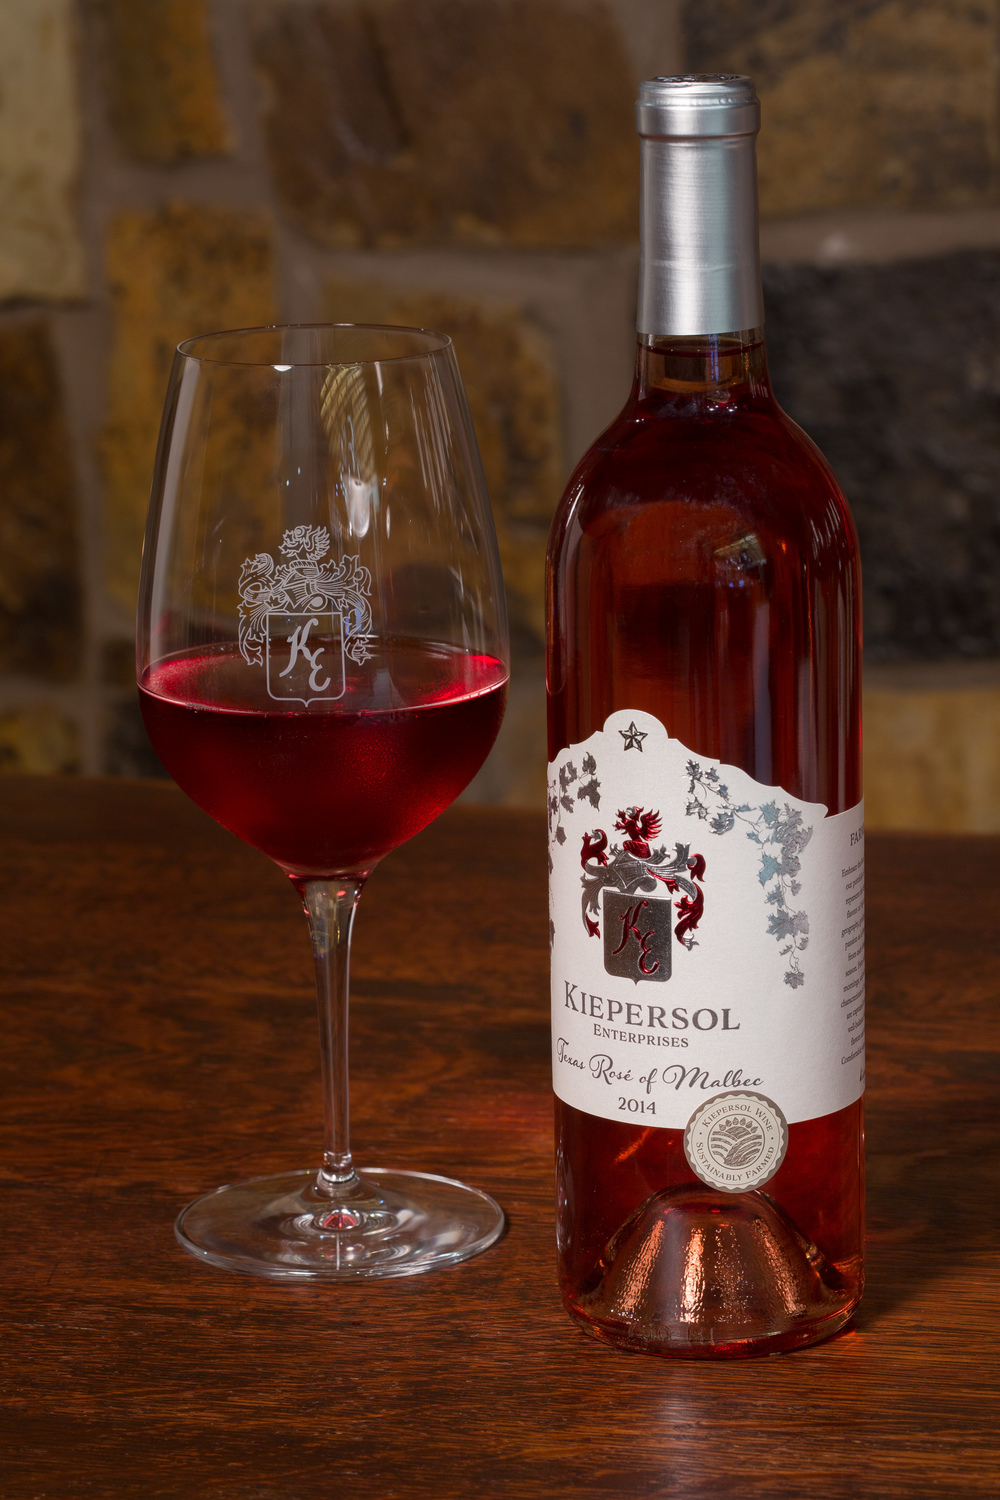 KIEPERSOL Rose of Malbec wine with glass   ©   2015 KIEPERSOL ENTERPRISES